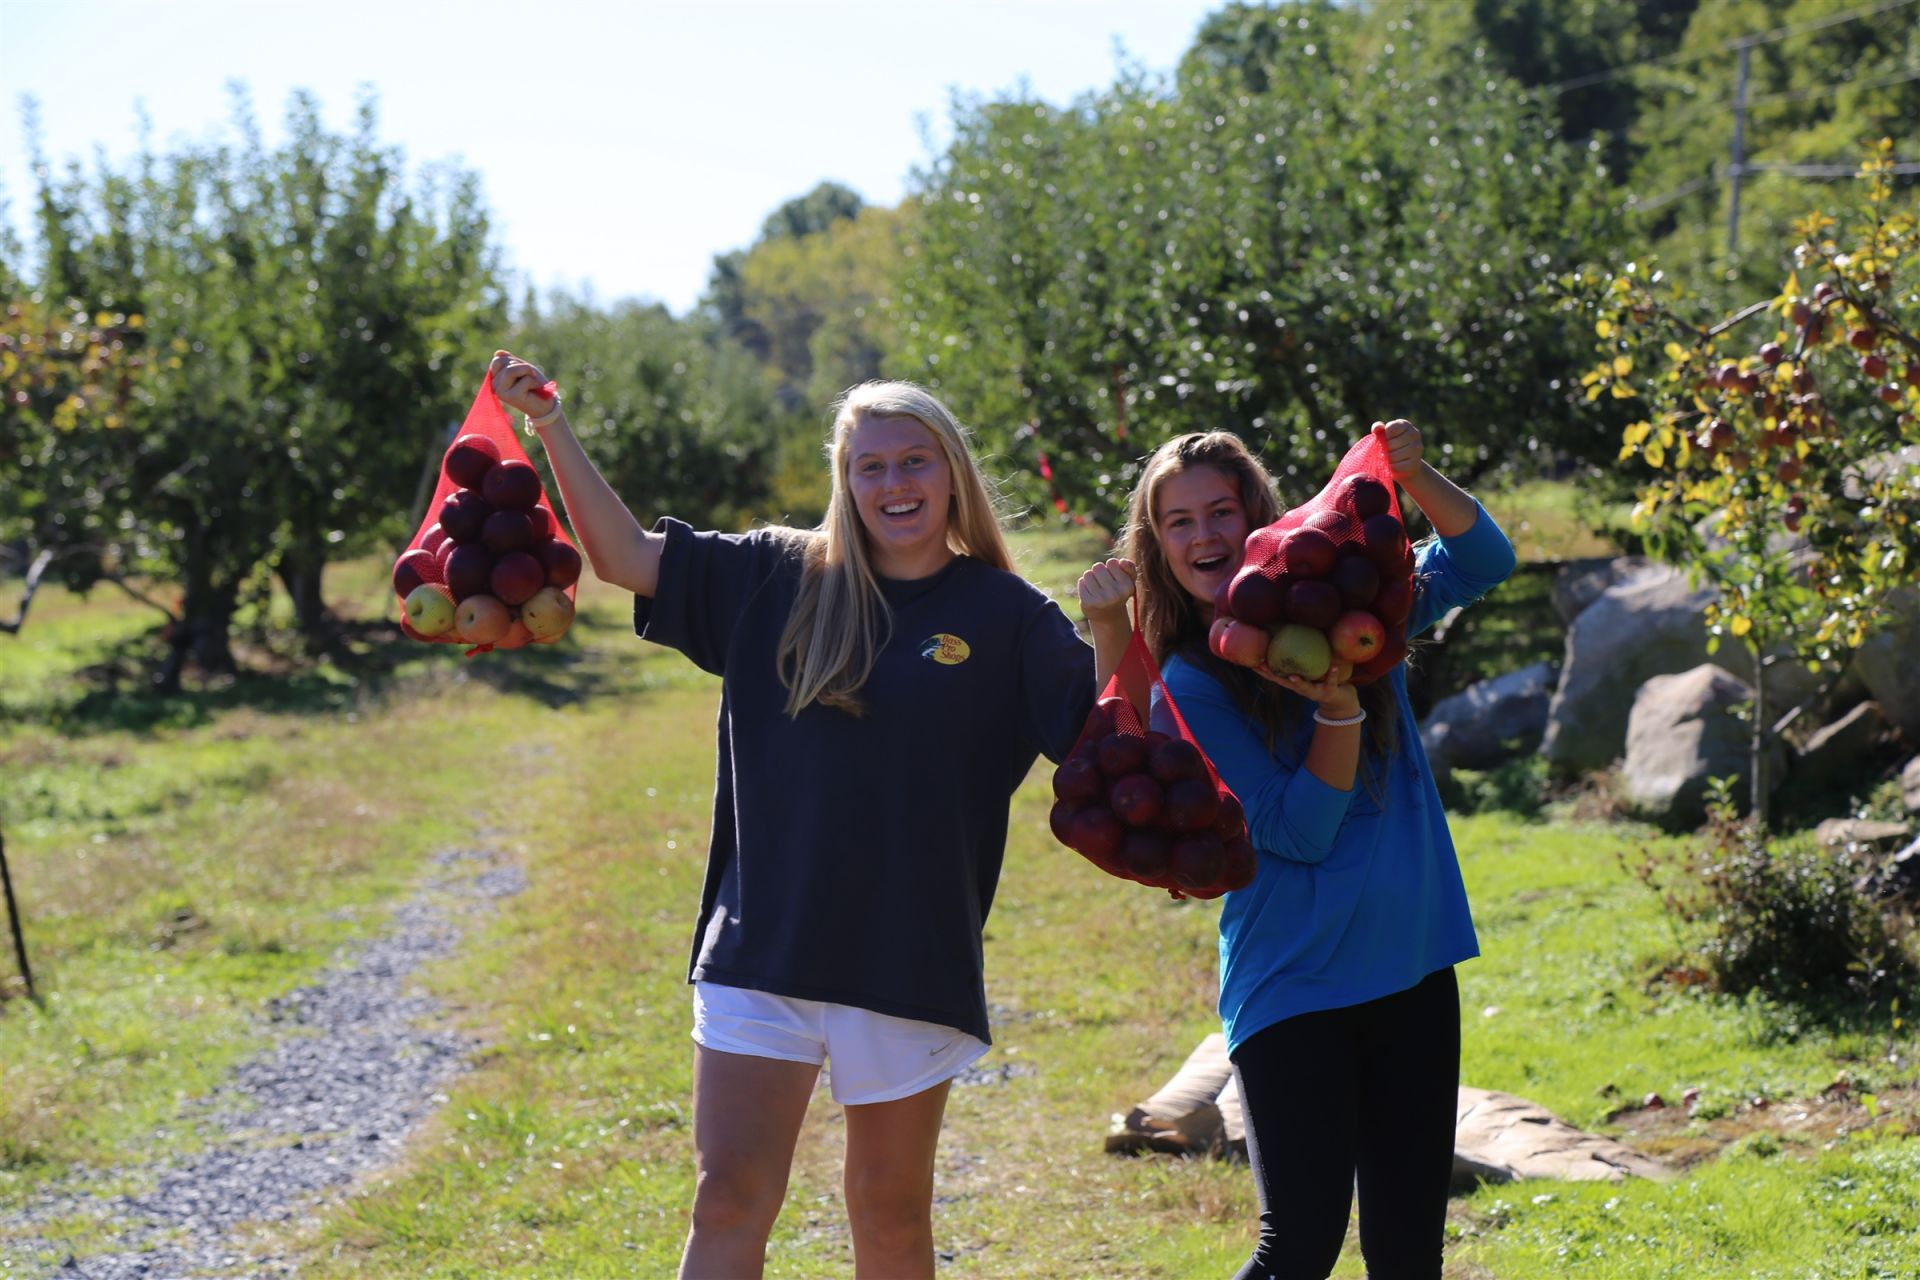 Freshmen glean hundreds of pounds of apples for the Society of St. Andrew (SoSA), a hunger relief nonprofit that aims to bring food that would be wasted to millions of Americans living in poverty.